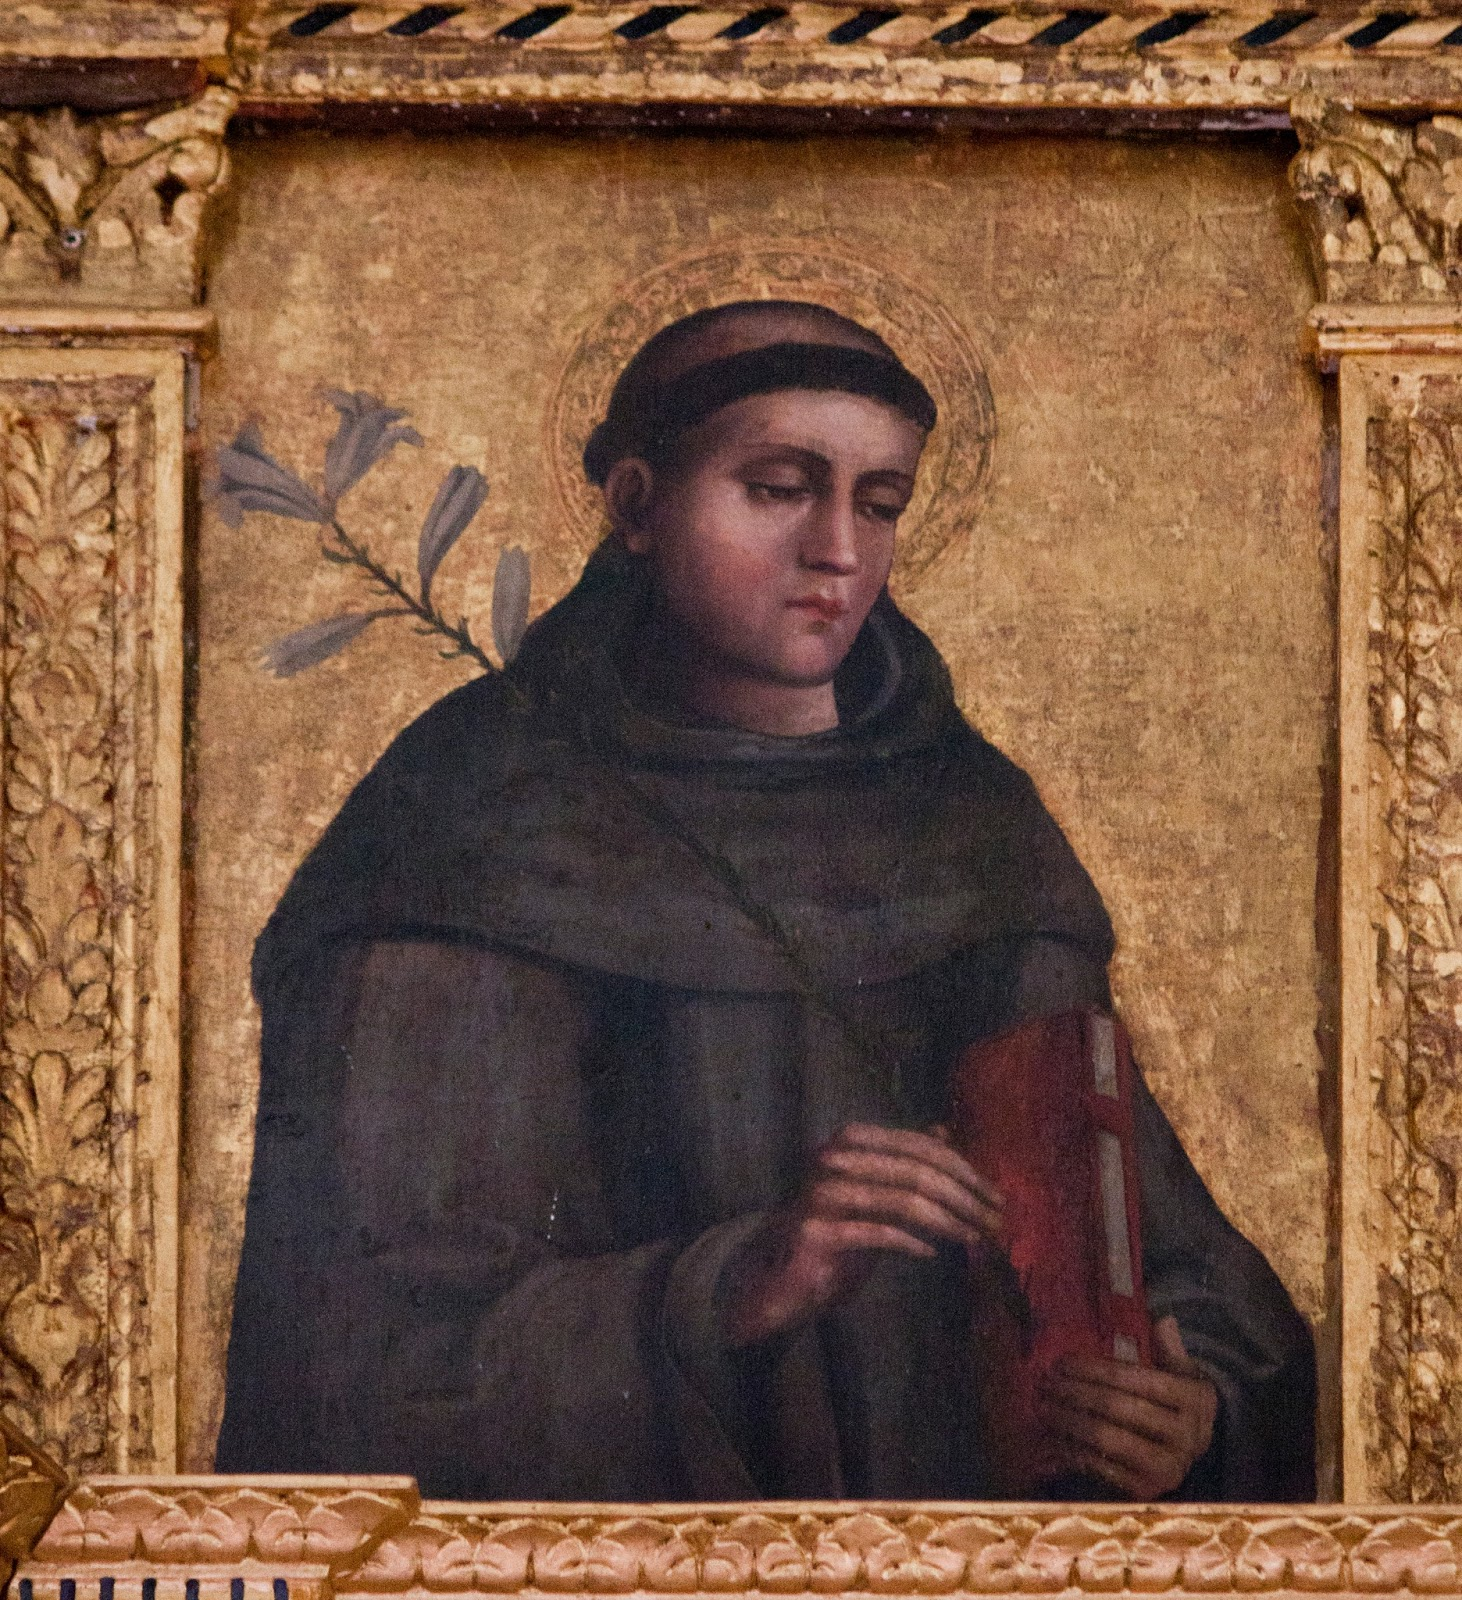 saint bonaventure catholic singles University information founded in 1858 in the interest of promoting catholic-franciscan education, st bonaventure university continues to pursue academic excellence through personalized attention that reflects the franciscan tradition of valuing human relationships.